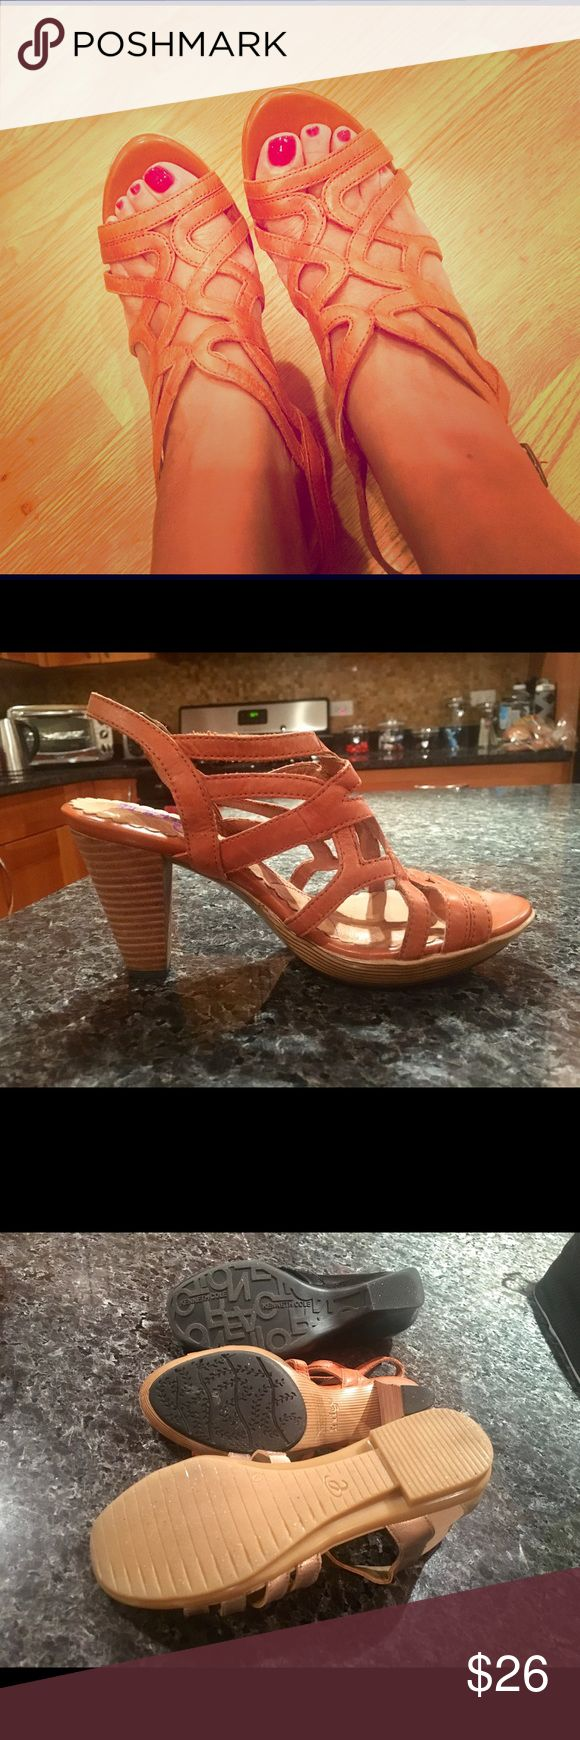 SALE THRU MONDAY! Orange heeled sandals by Clarks Love these strappy, orange, comfy heels by Clark's. Perfect for the end of summer going into fall. Goes with skirts, dresses, shorts, and capris. Great cushioning and high quality! Clarks Shoes Heels